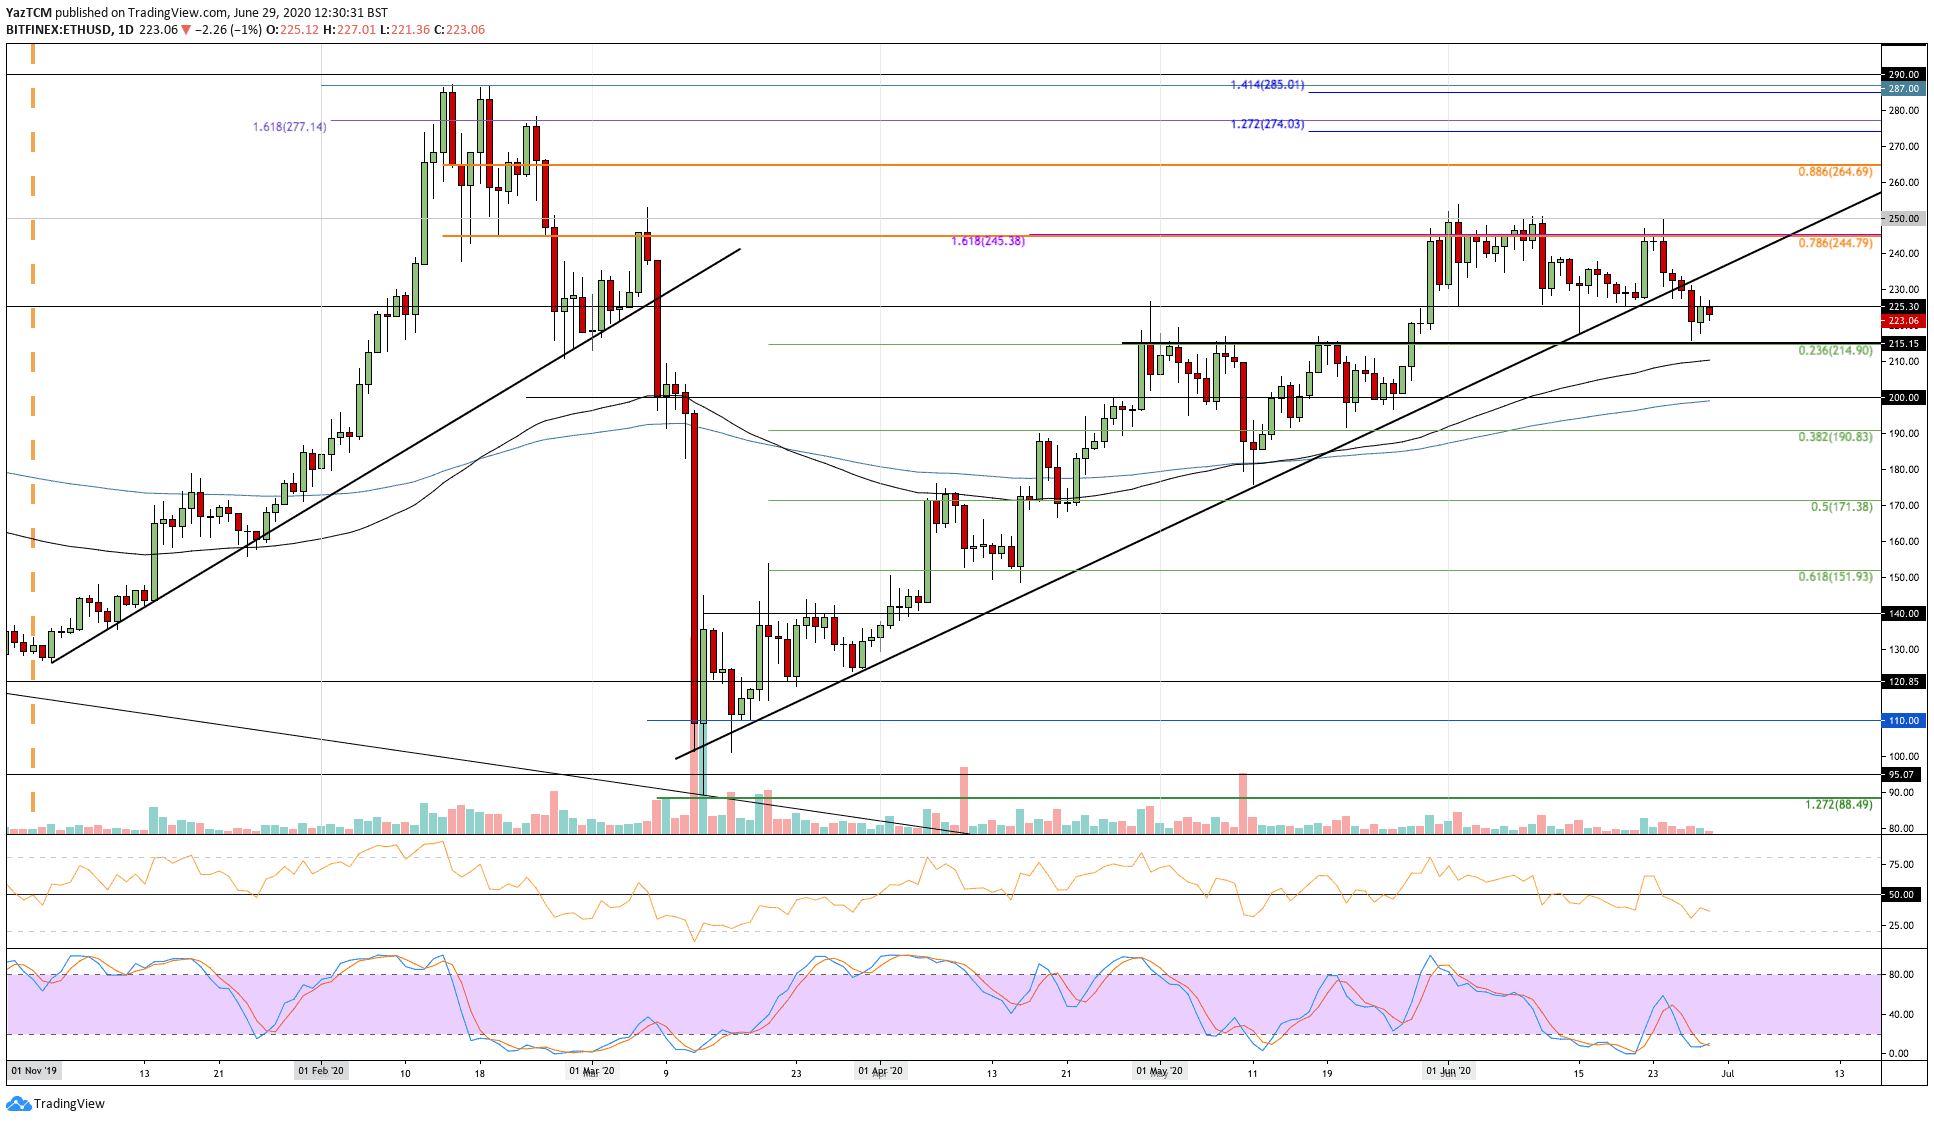 Ethereum Price Analysis: ETH Dropped Below a 3-Month Rising Trend As Bears Start to Settle, What's Next?